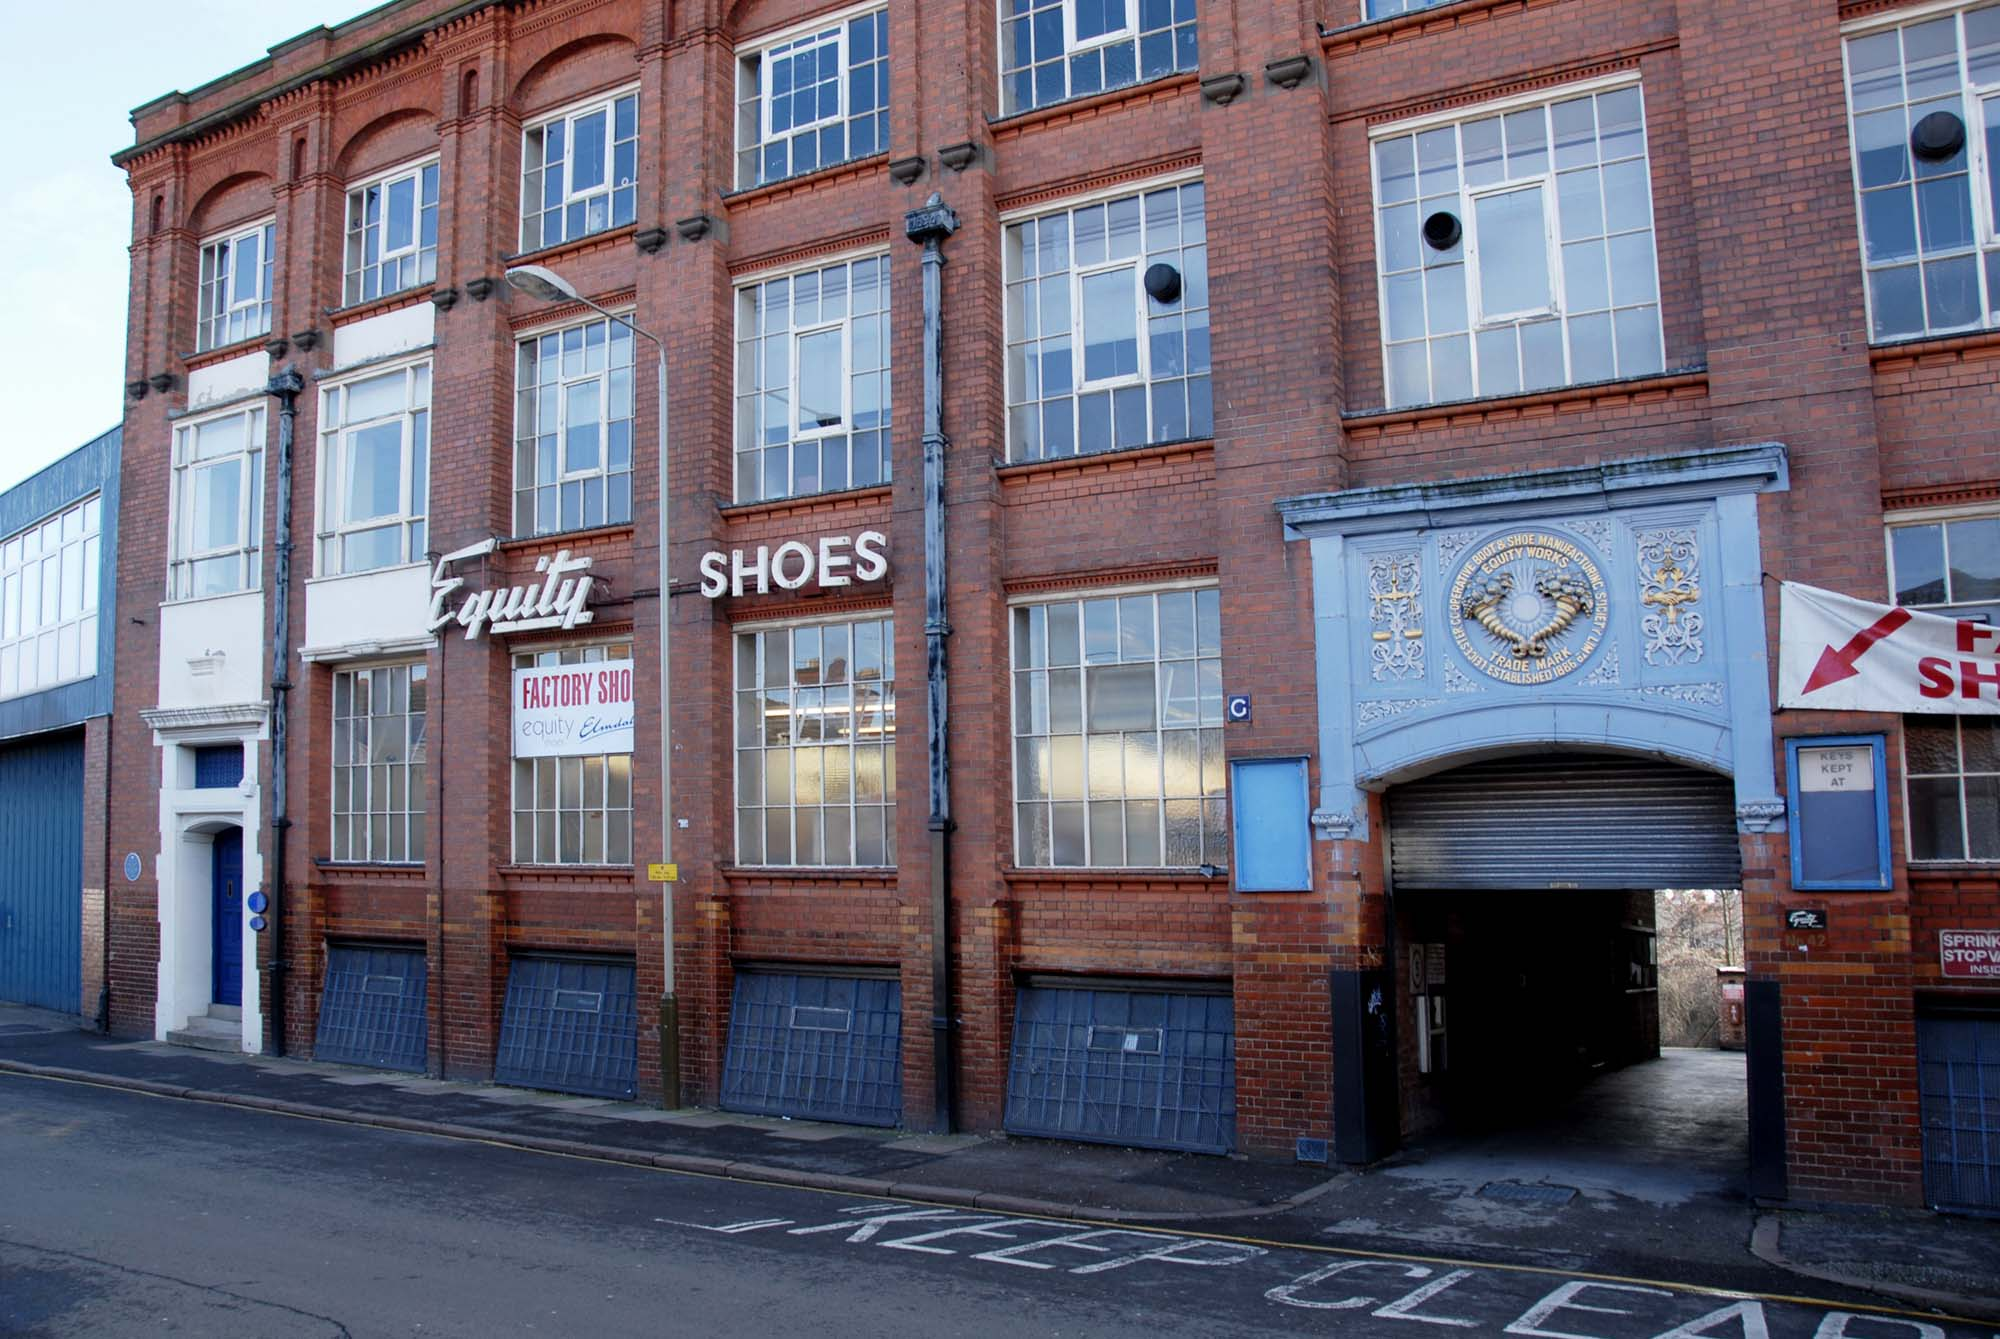 Equity Shoes in 2009, just before the building was redeveloped into residential apartments -